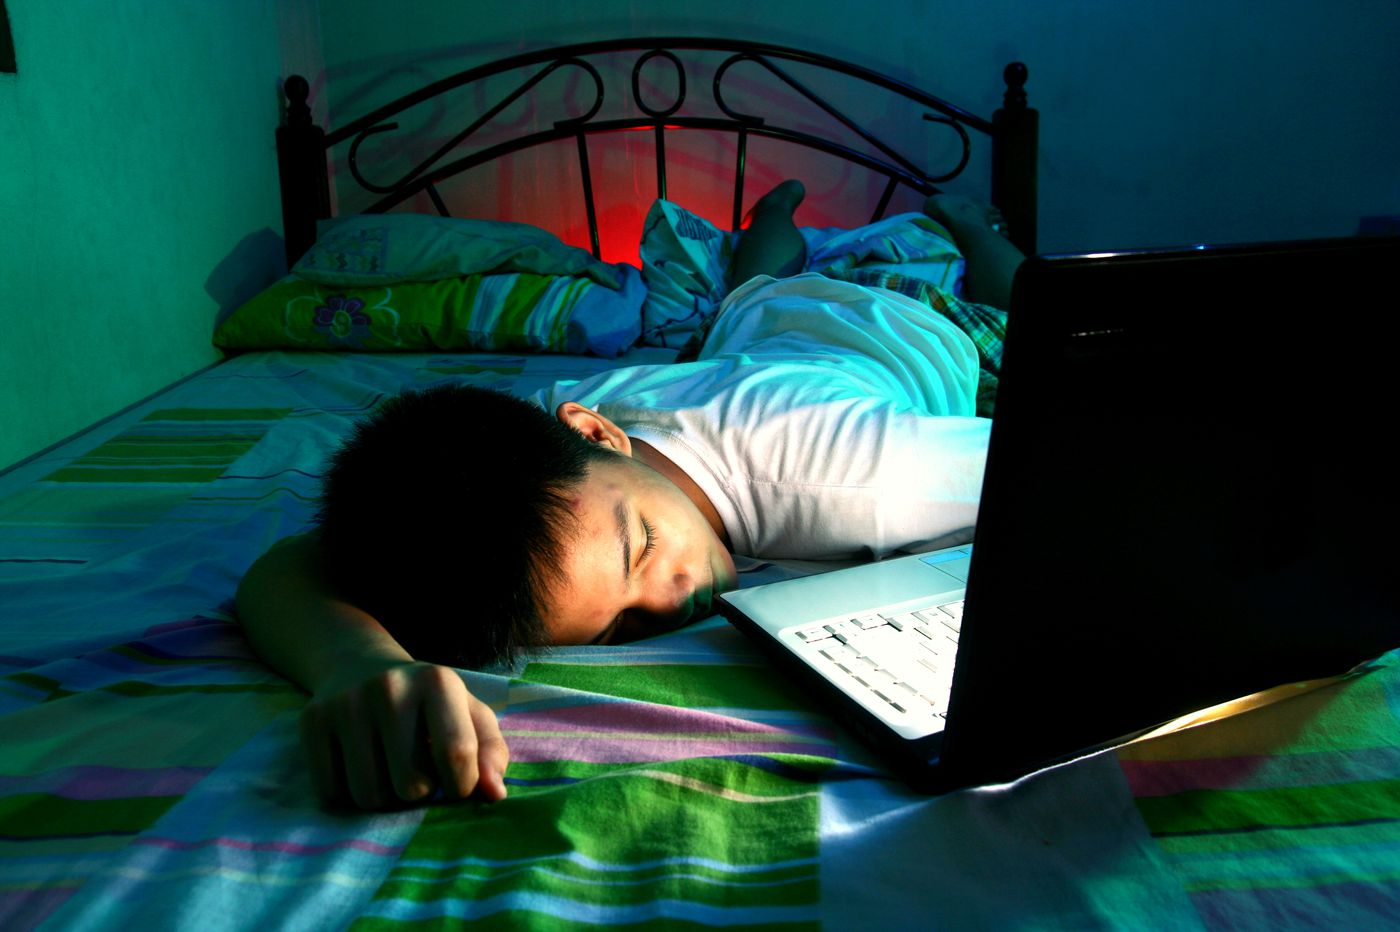 What's a parent to do if kids insist on pulling all-nighters?